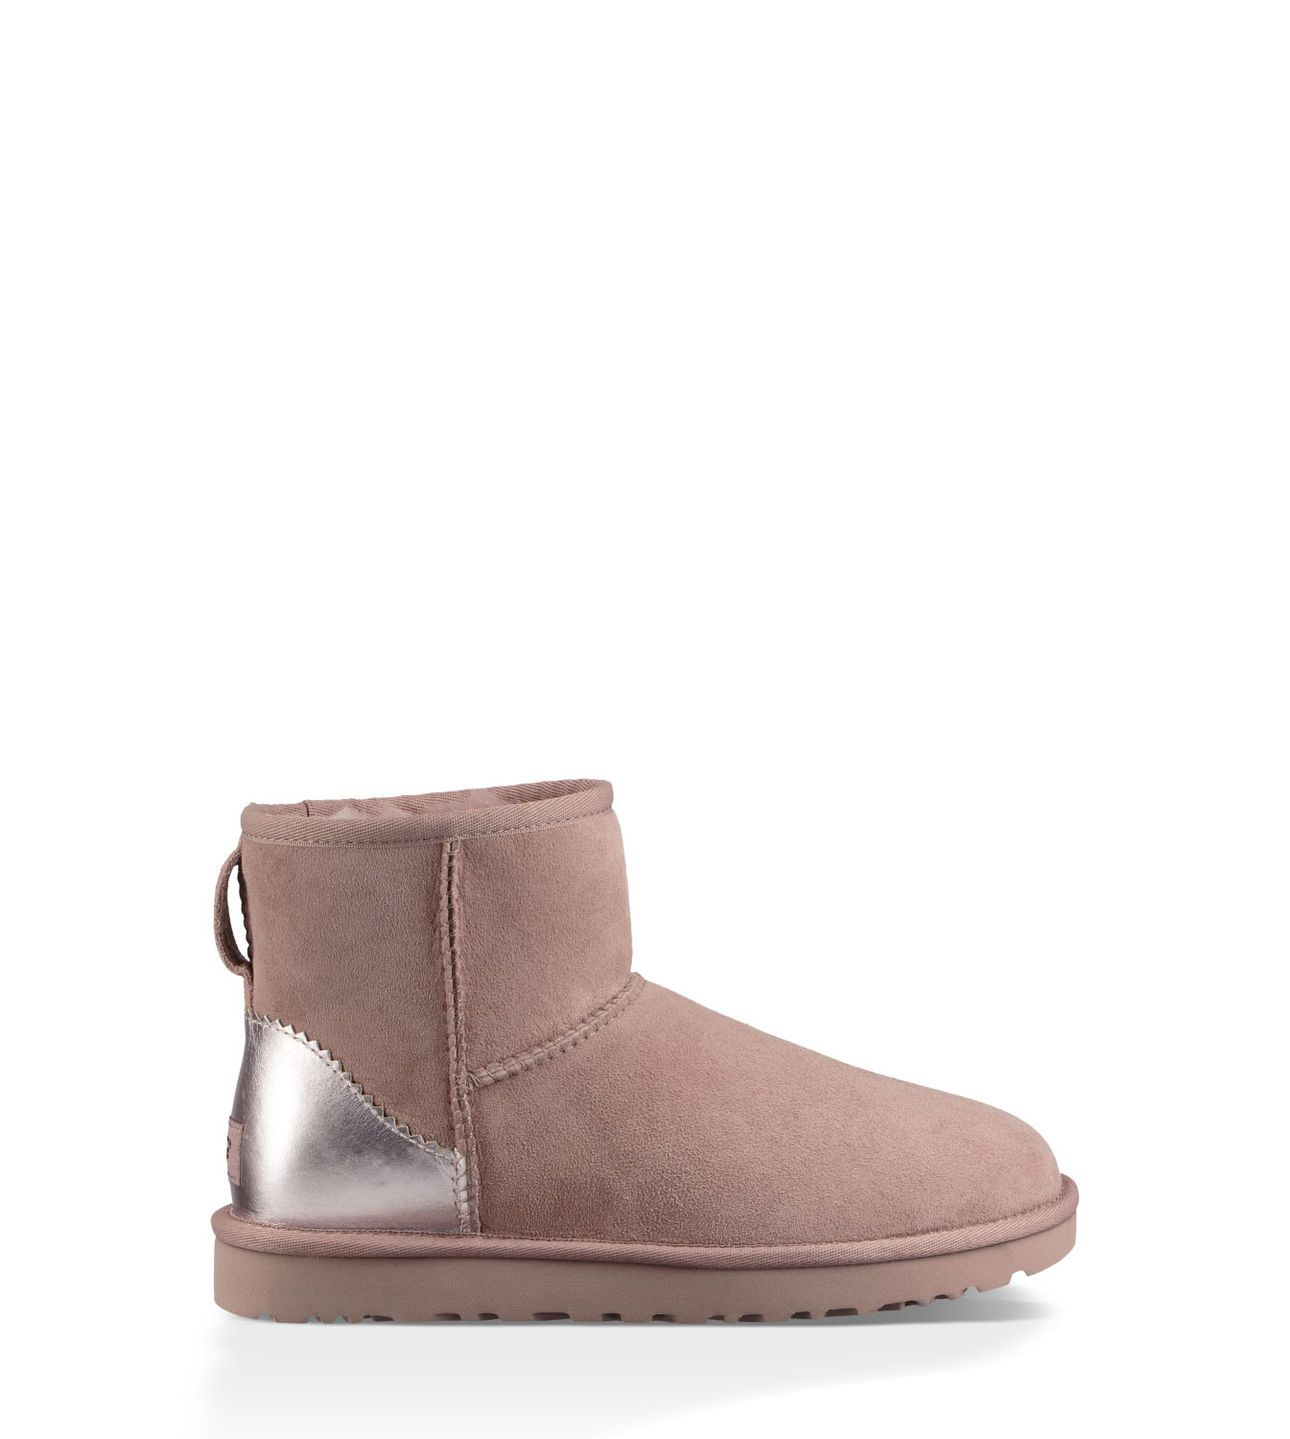 Shop the Classic Mini II Metallic Boot, part of the Official UGG® Women's collection